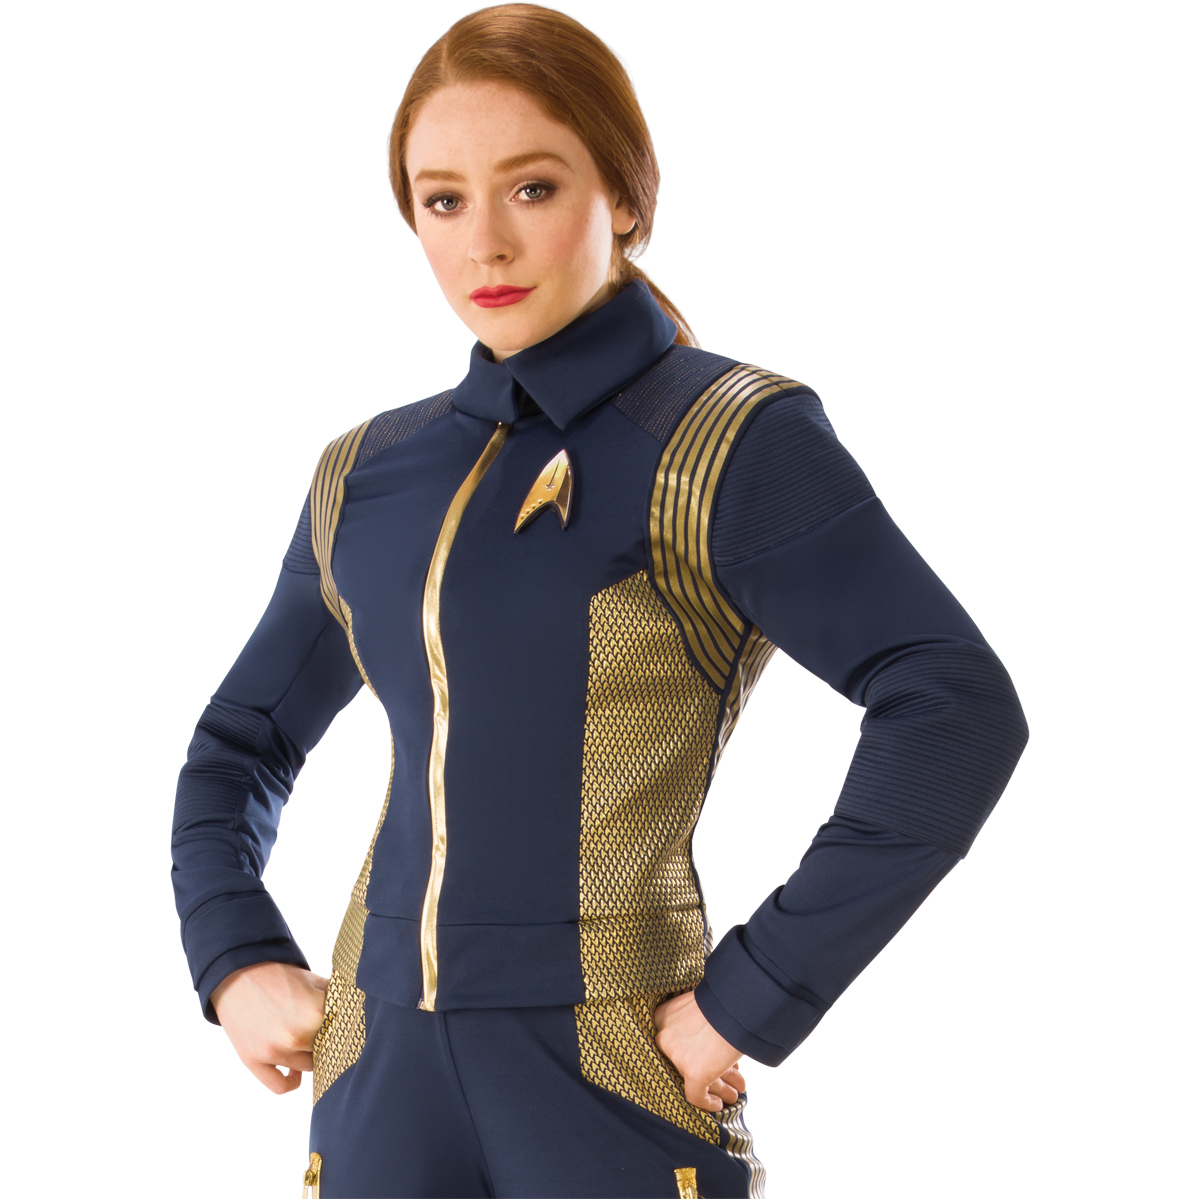 Star Trek Discovery Command Women's Uniform (Gold)